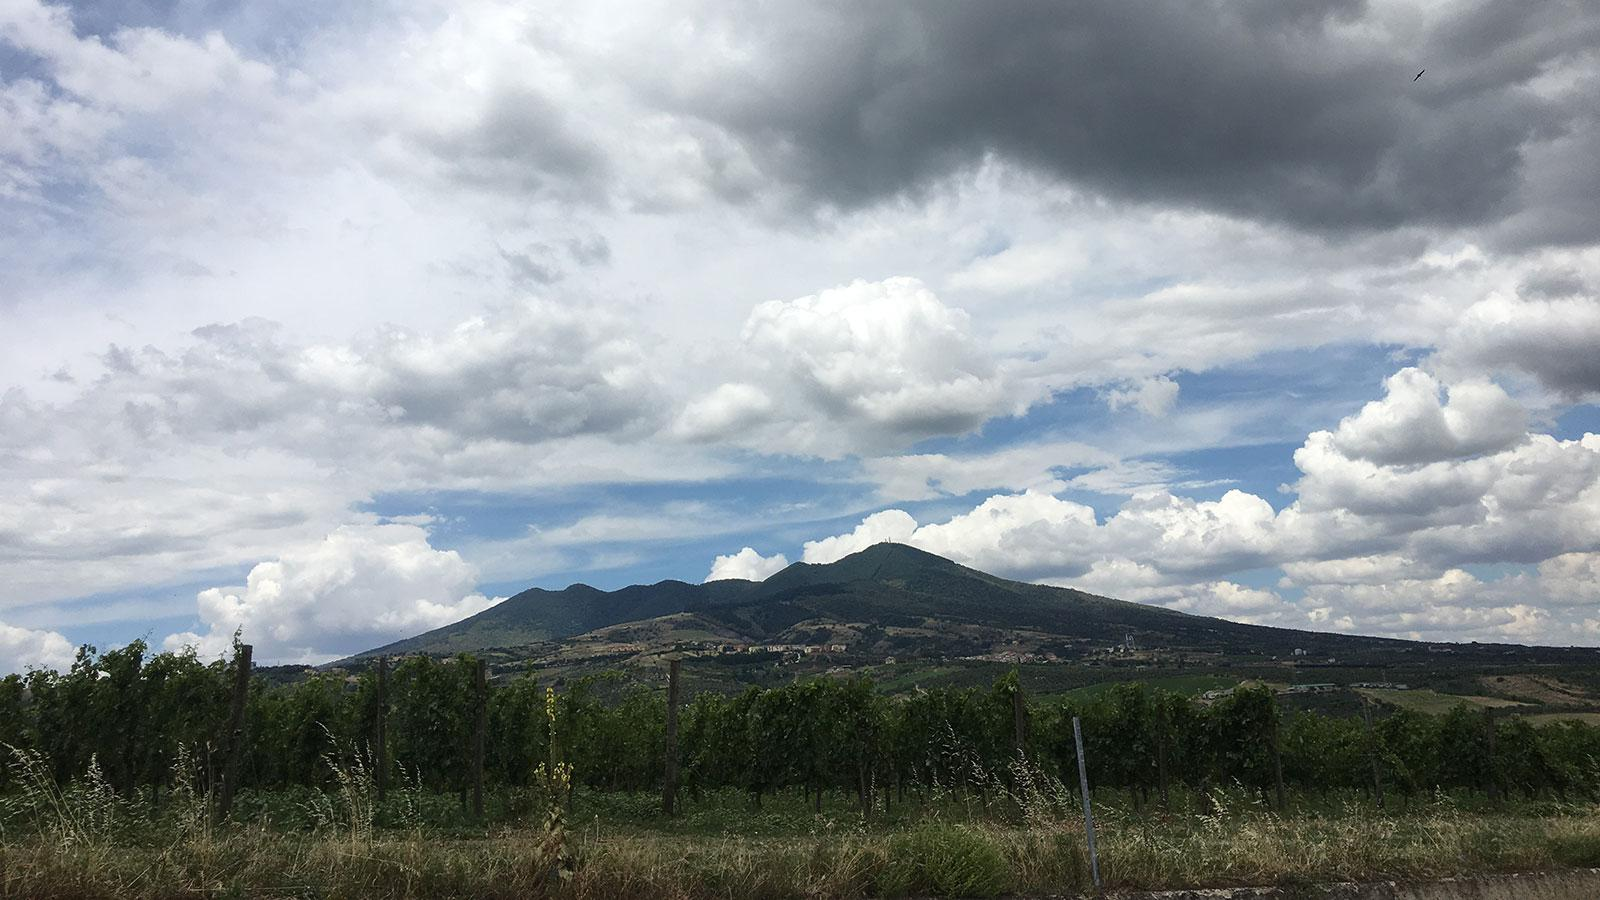 The region's layered soils, which contribute to Aglianico's character, include a mix of lava and ash from long-dormant Mt. Vulture.